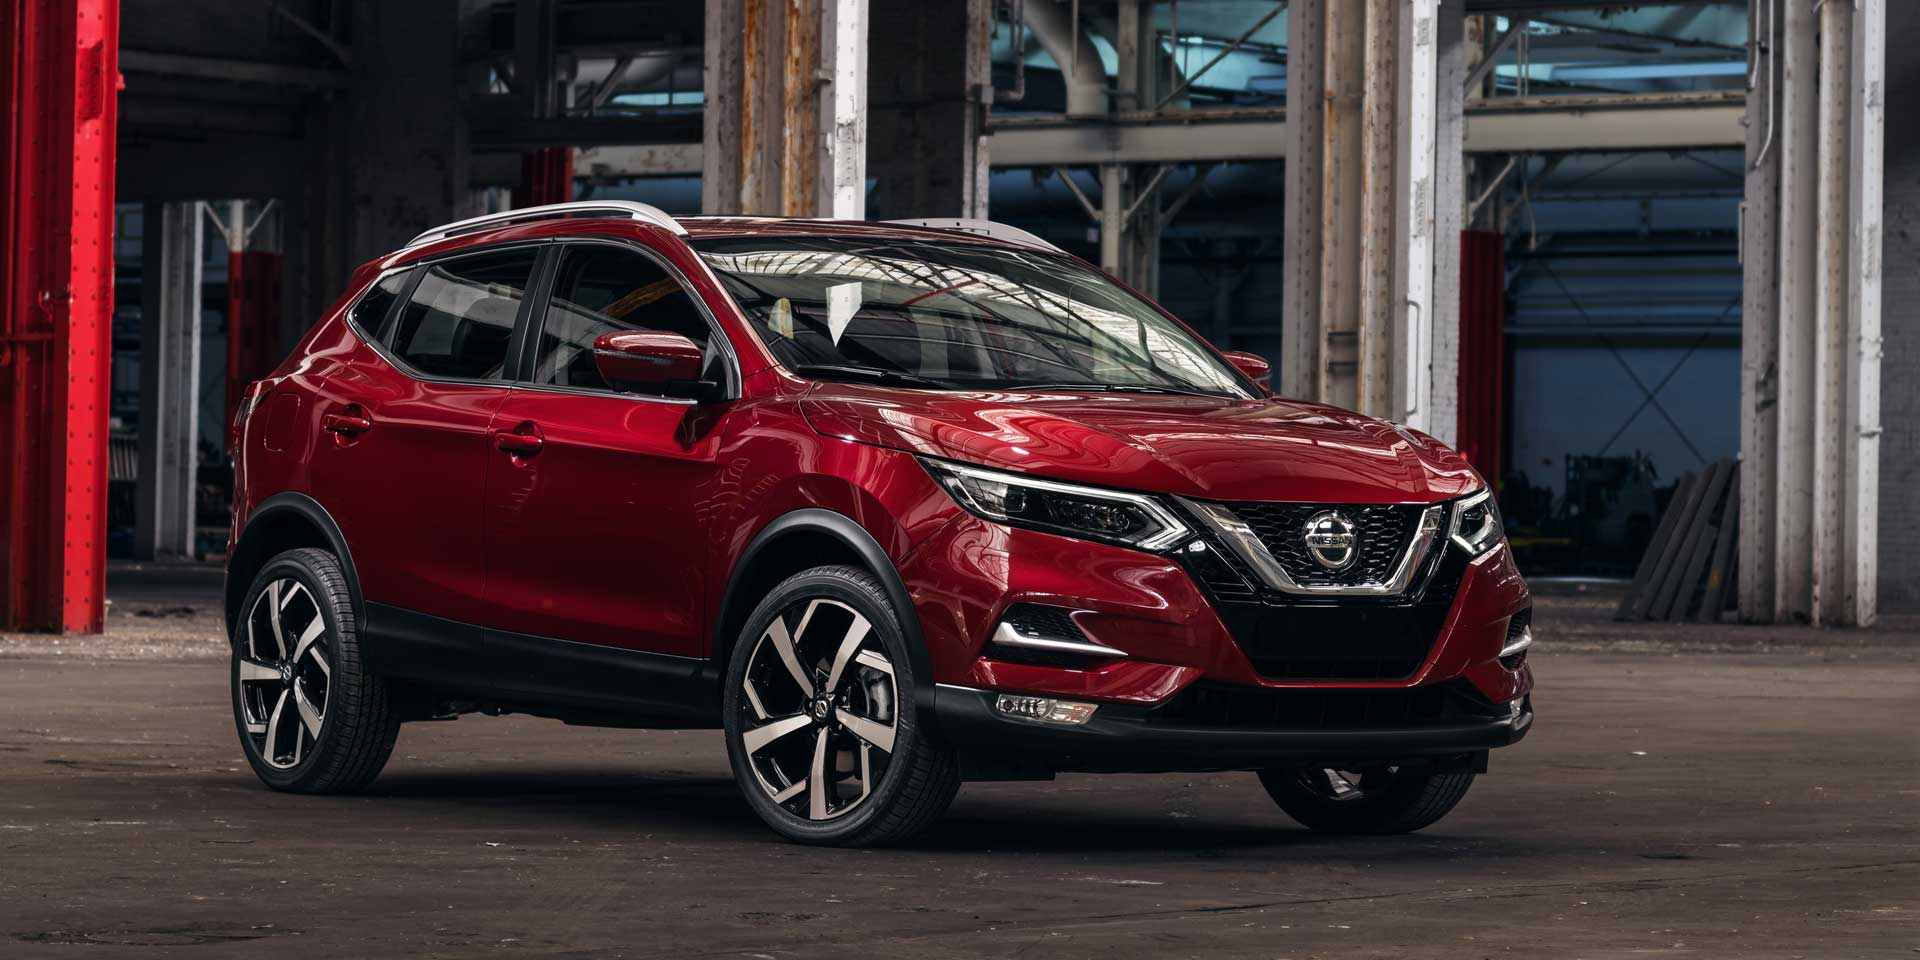 53 The Best 2020 Nissan Rogue Pictures